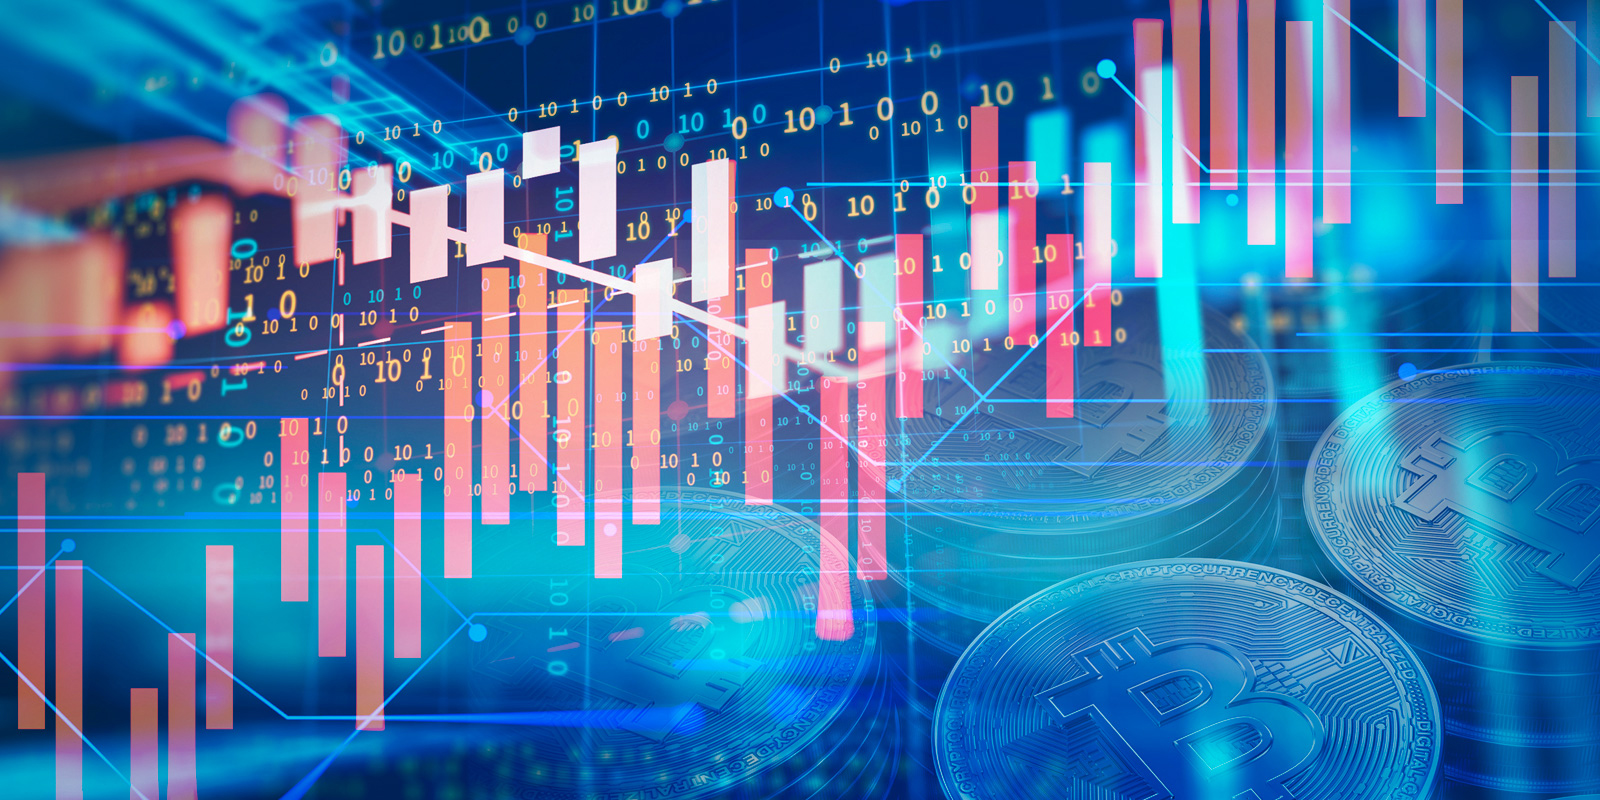 SEC/FINRA Issue Joint Guidance on Digital Assets | Jones Day